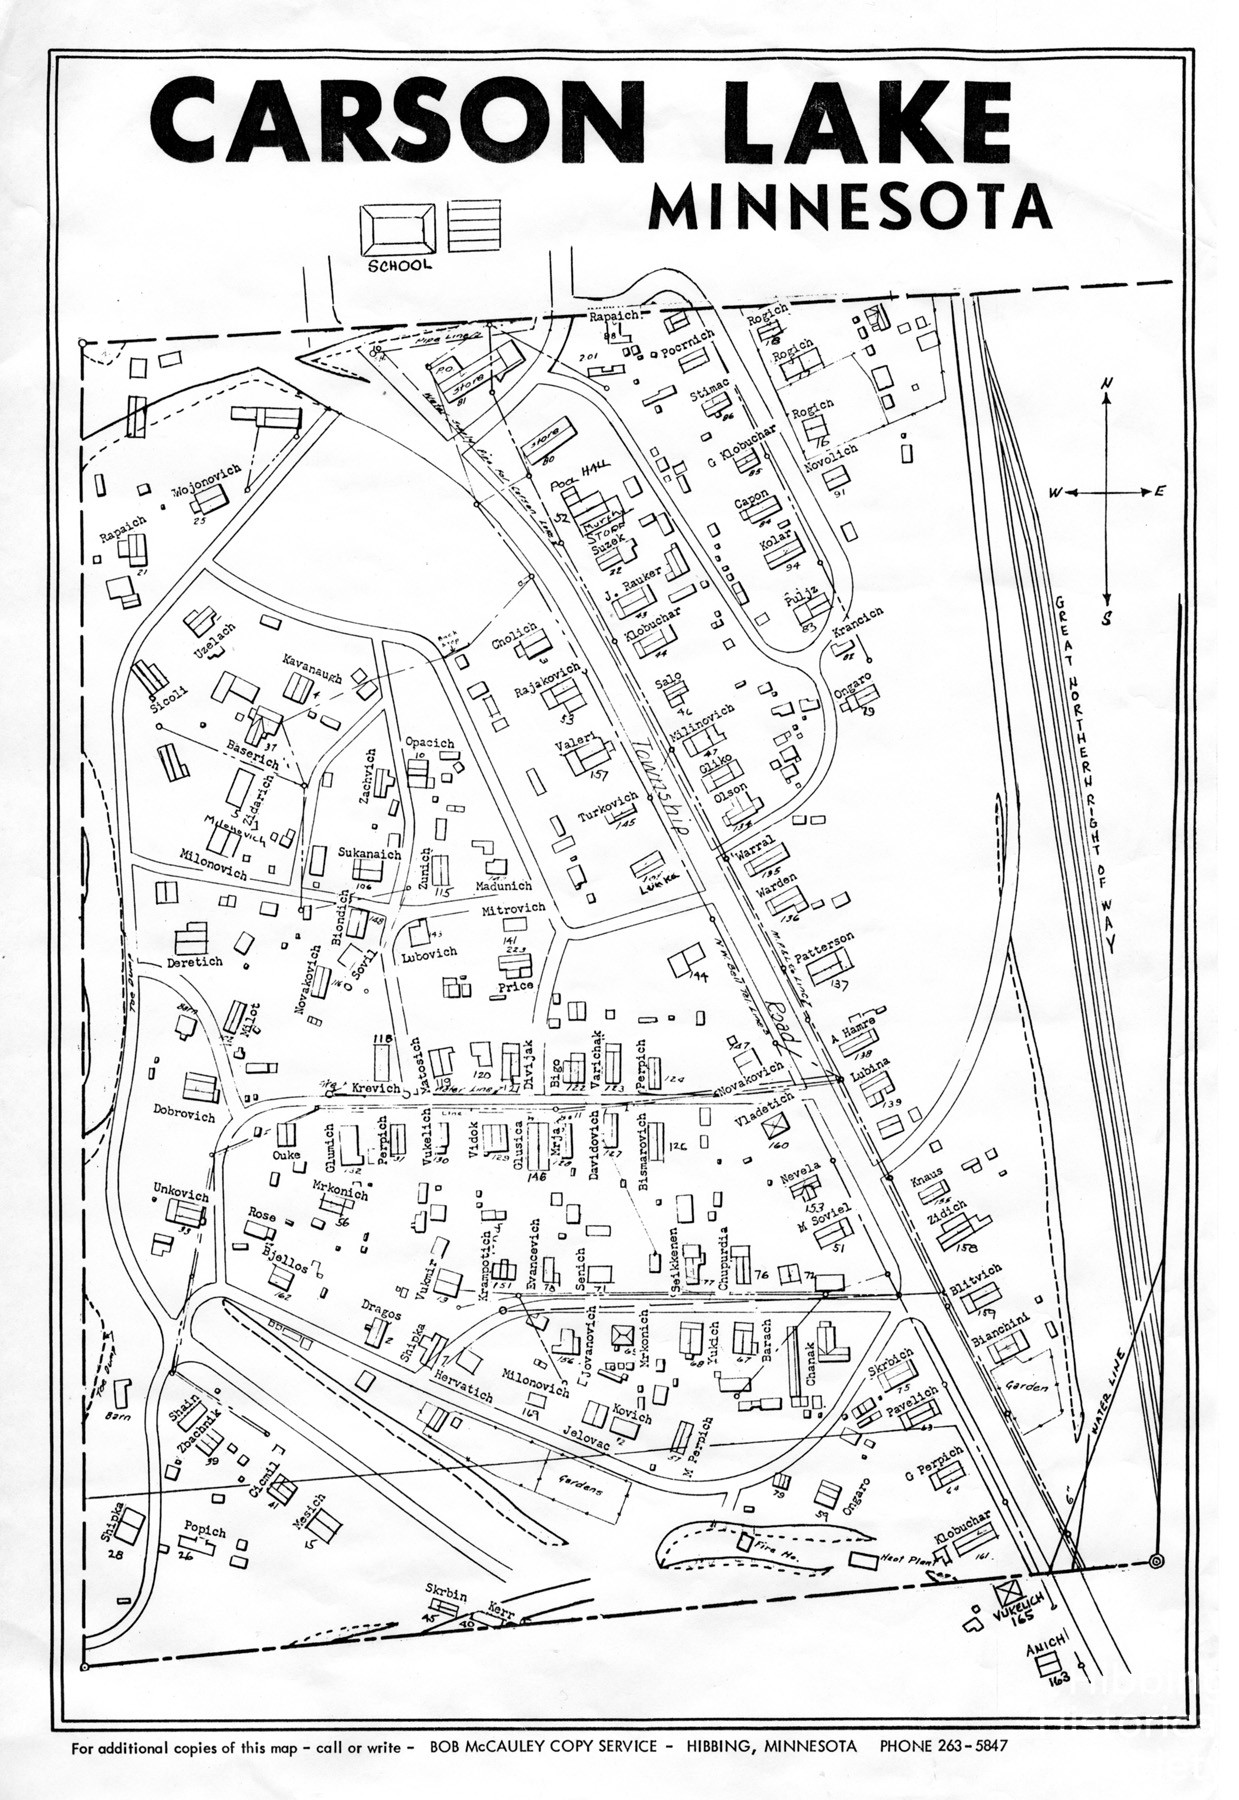 Carson Lake Map with Residents